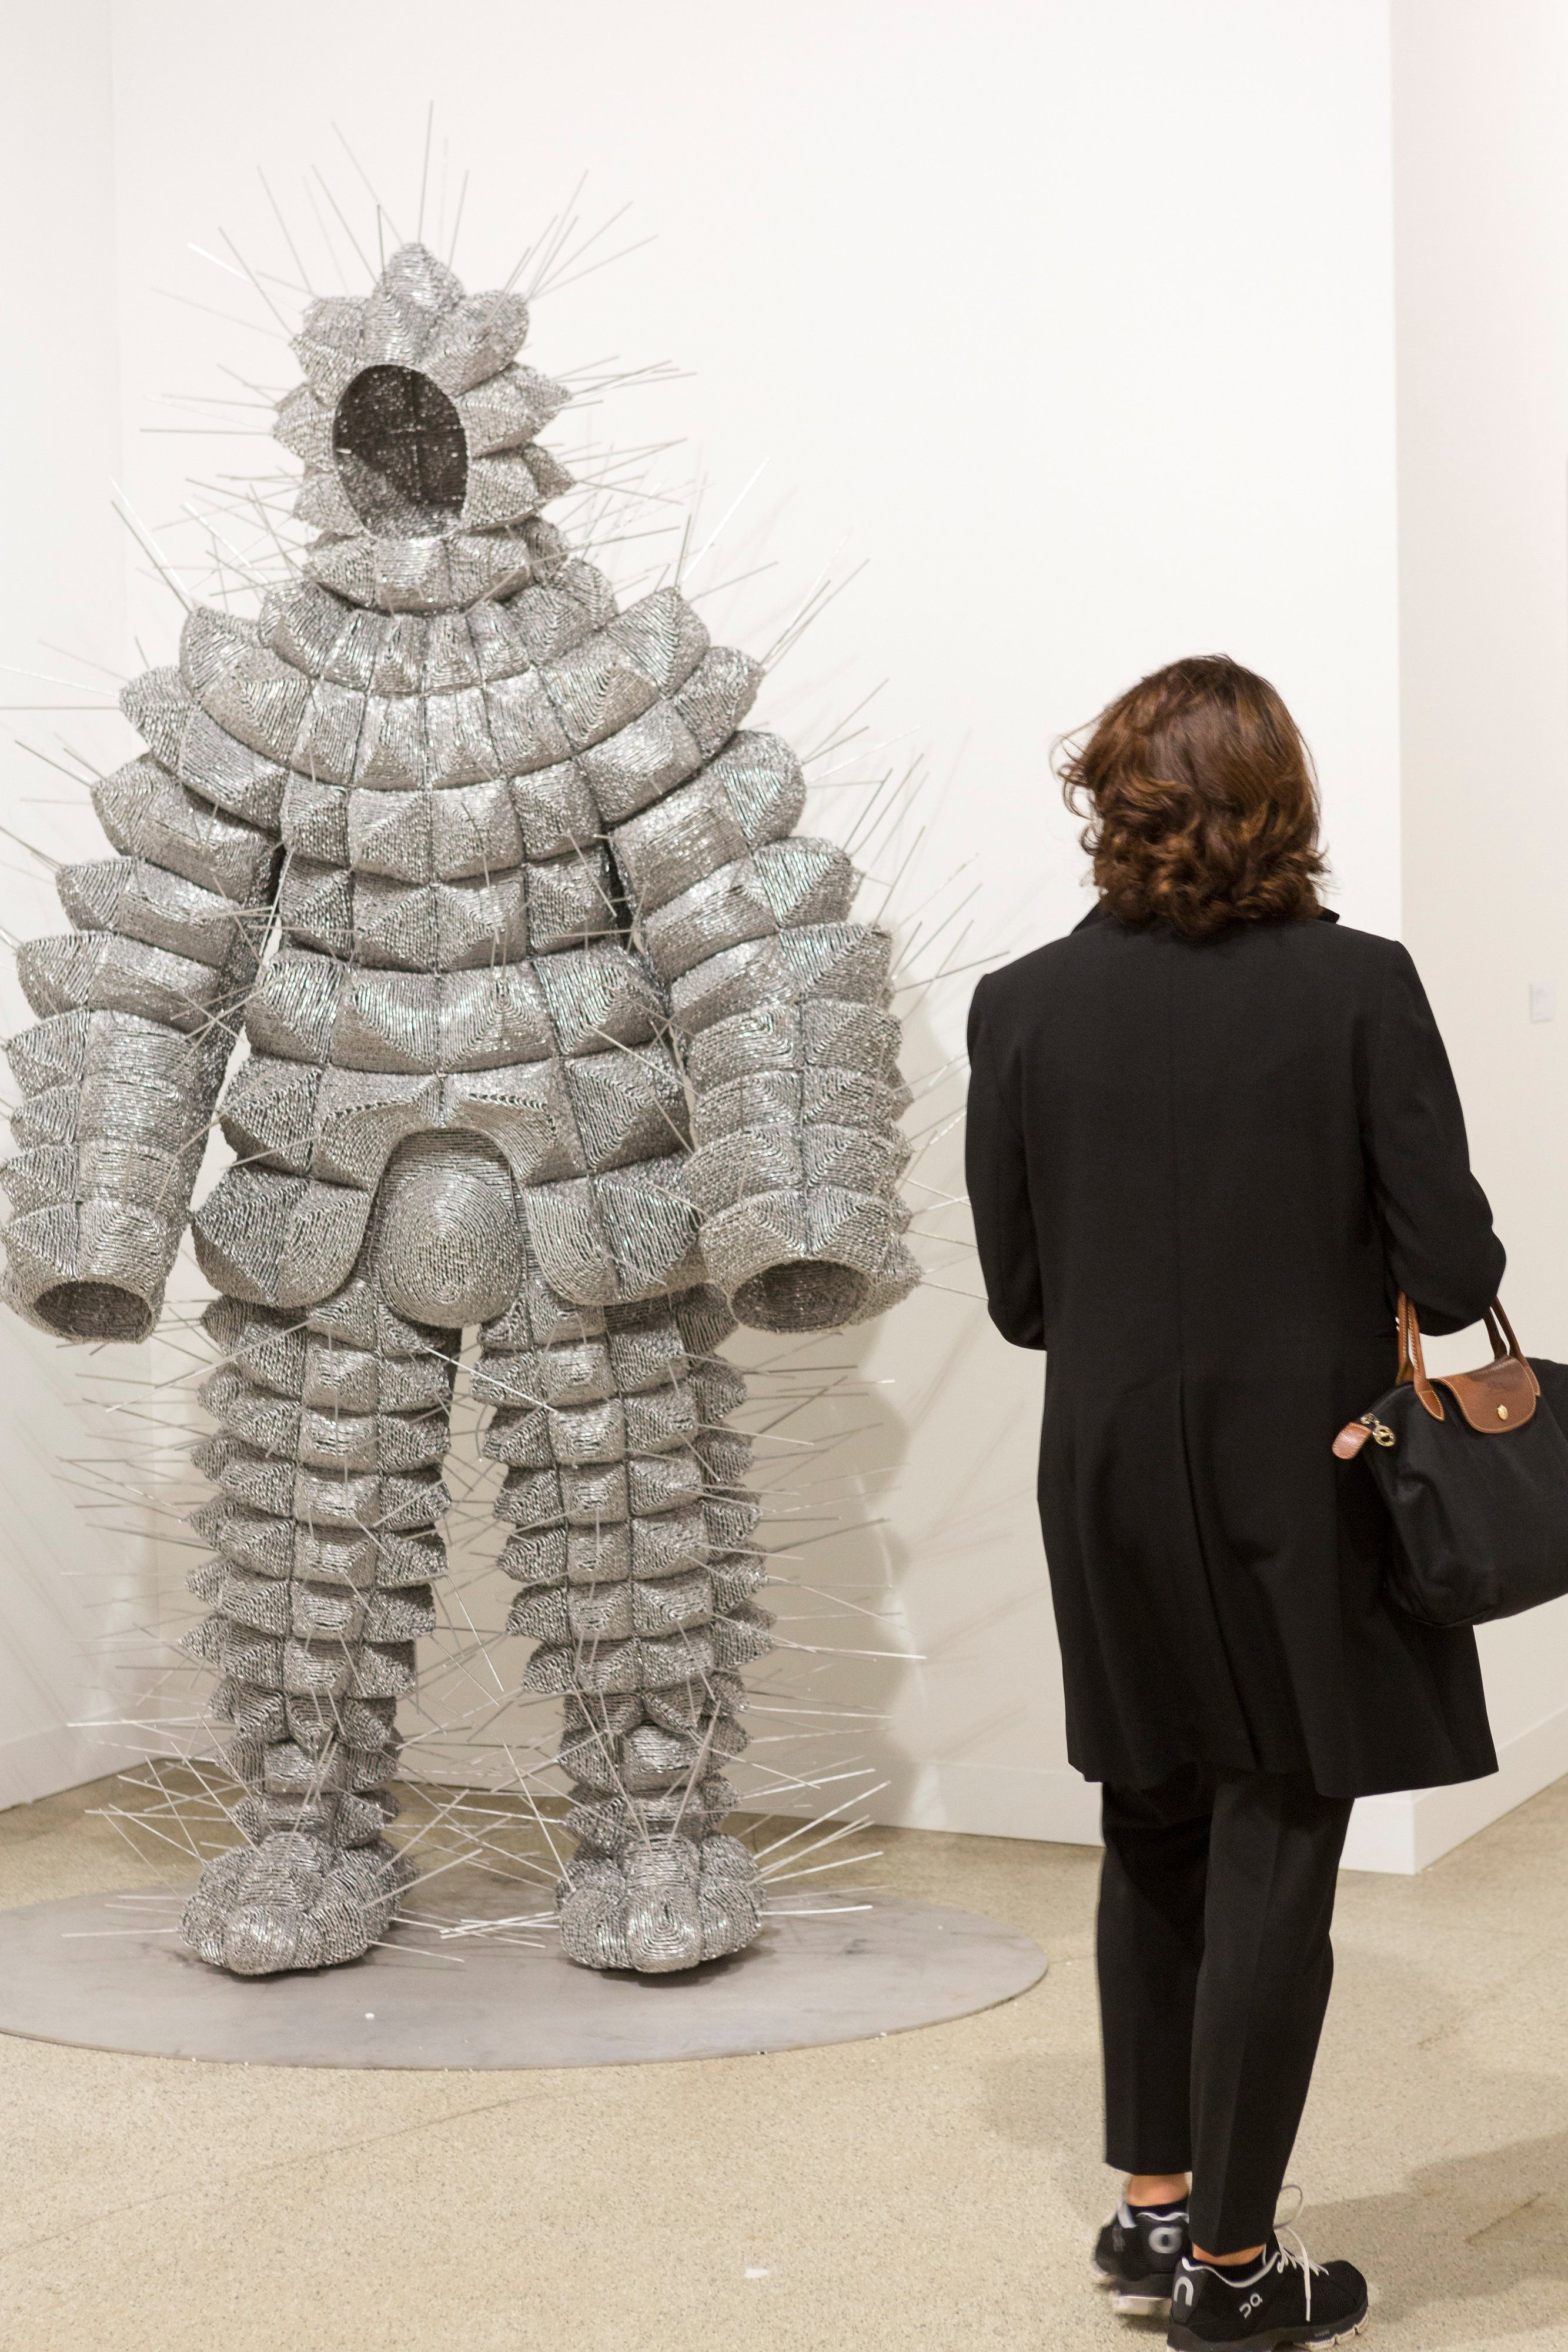 Catterpillar suit by Walter Oltmann, presented by the Goodman Gallery at Art Basel, 2016